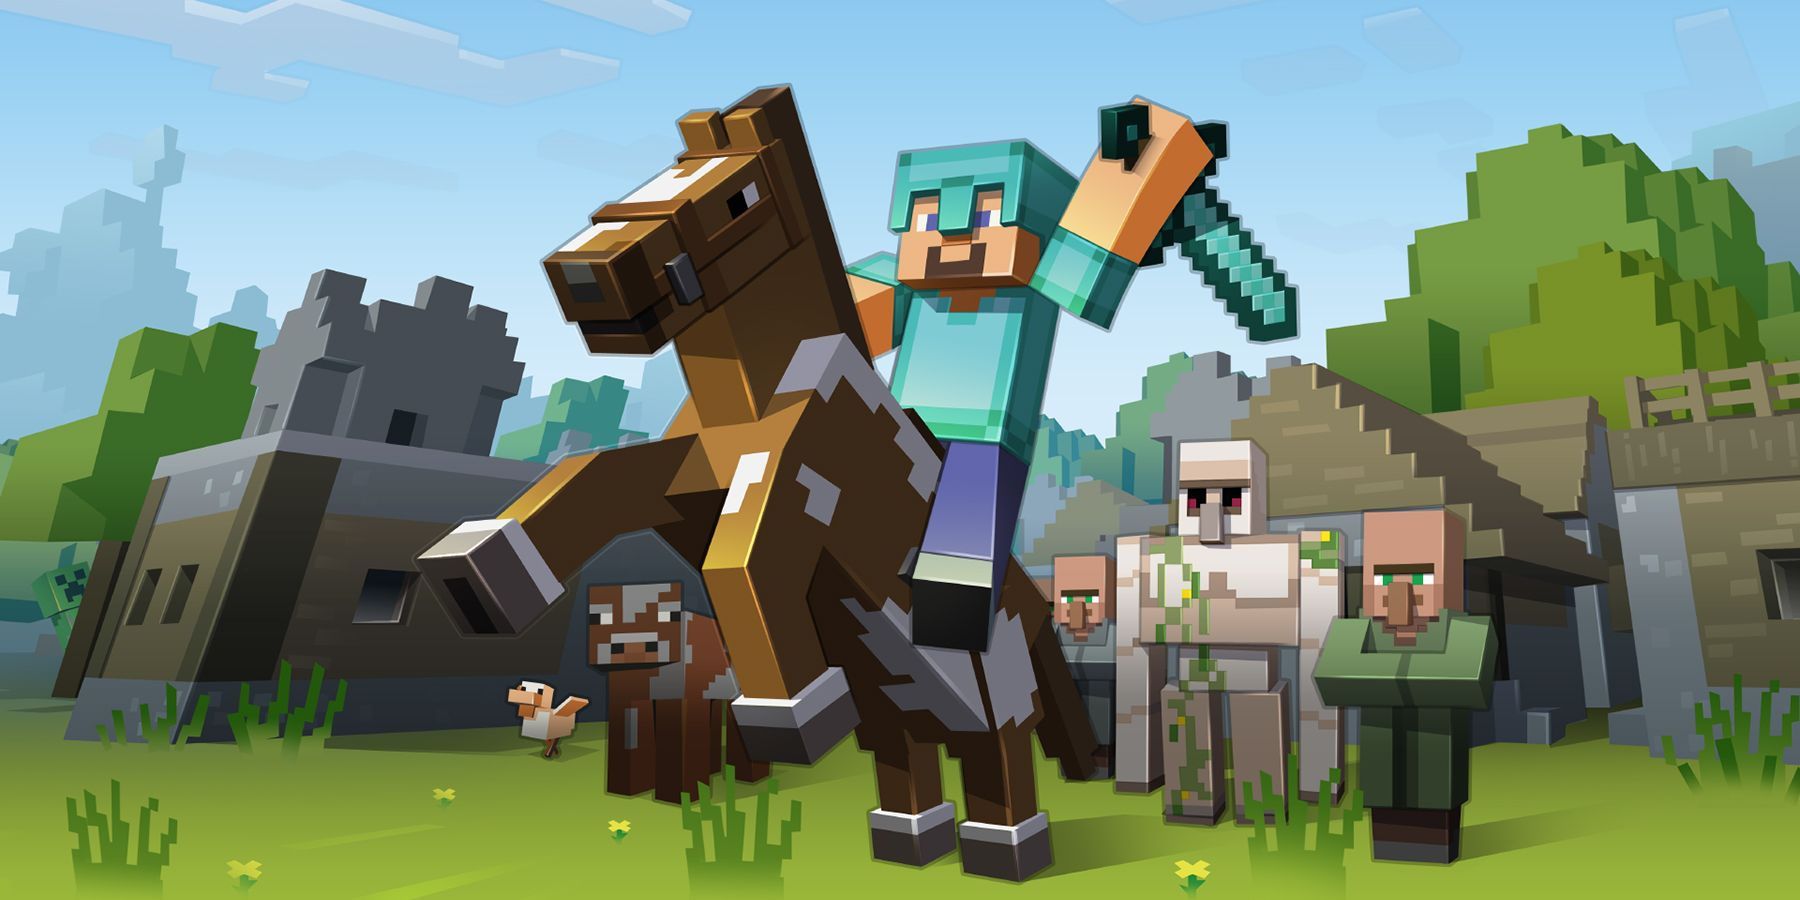 Minecraft Player Loses 5-Year Hardcore Survival Game